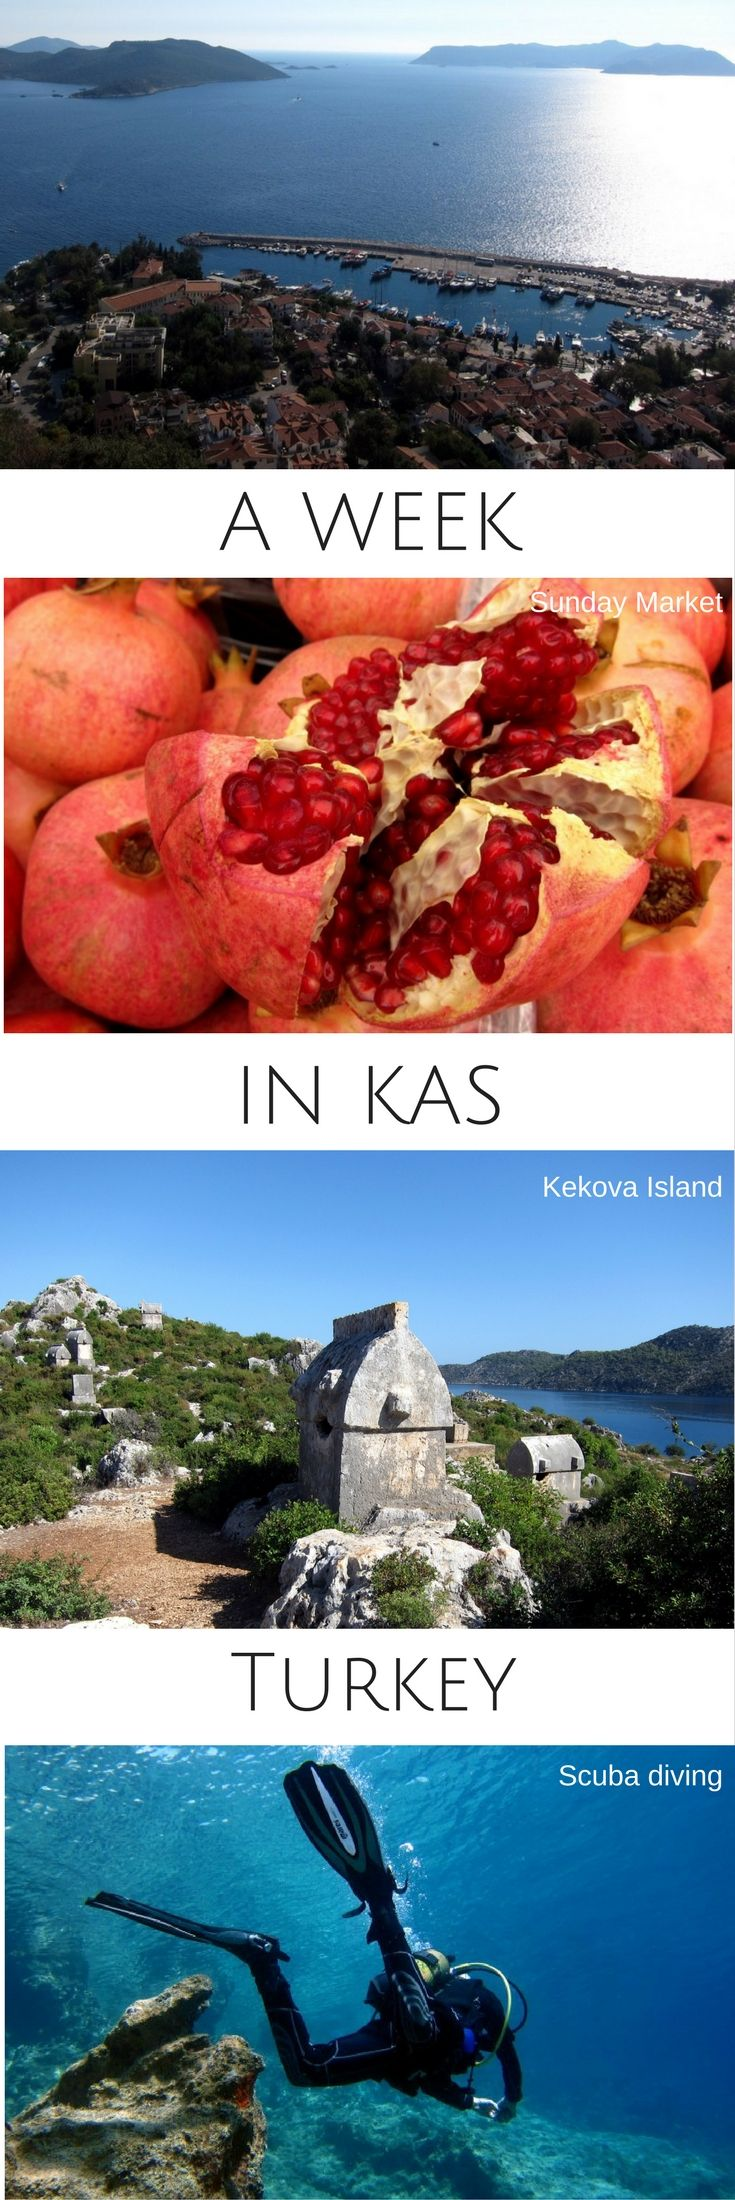 A week in Kas in Turkey - Dive with History - Amphorae Fields of Kas - Scuba diving Turkey - World Adventure Divers - Read more on https://worldadventuredivers.com/2012/10/30/dive-history-amphorae-kas-turkey/